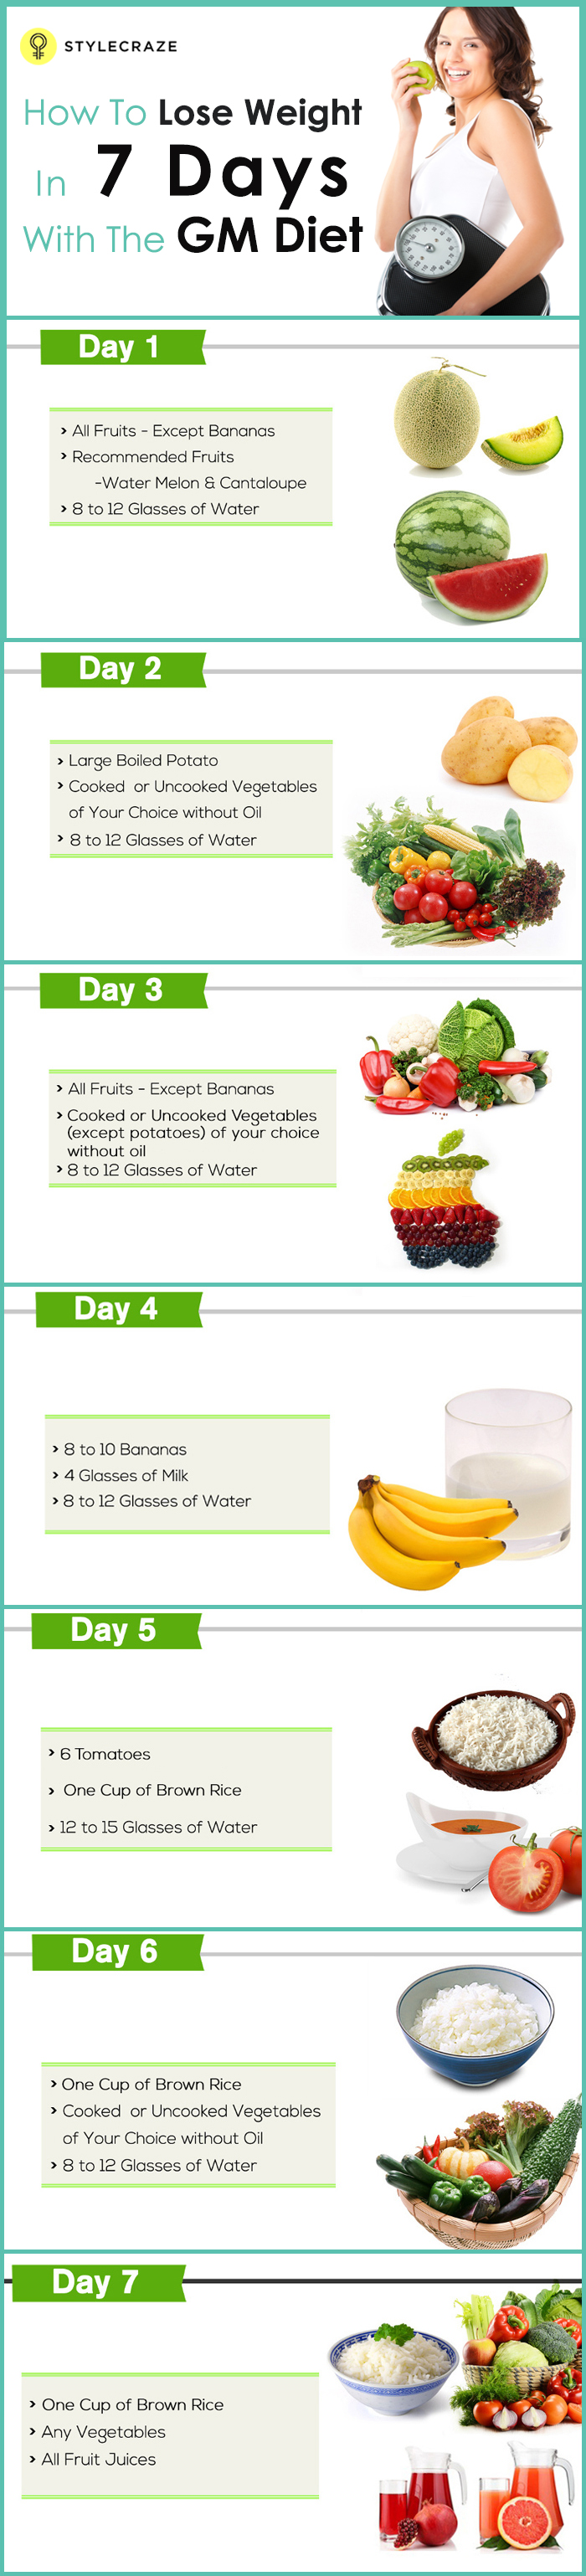 14 day weight loss meal plan